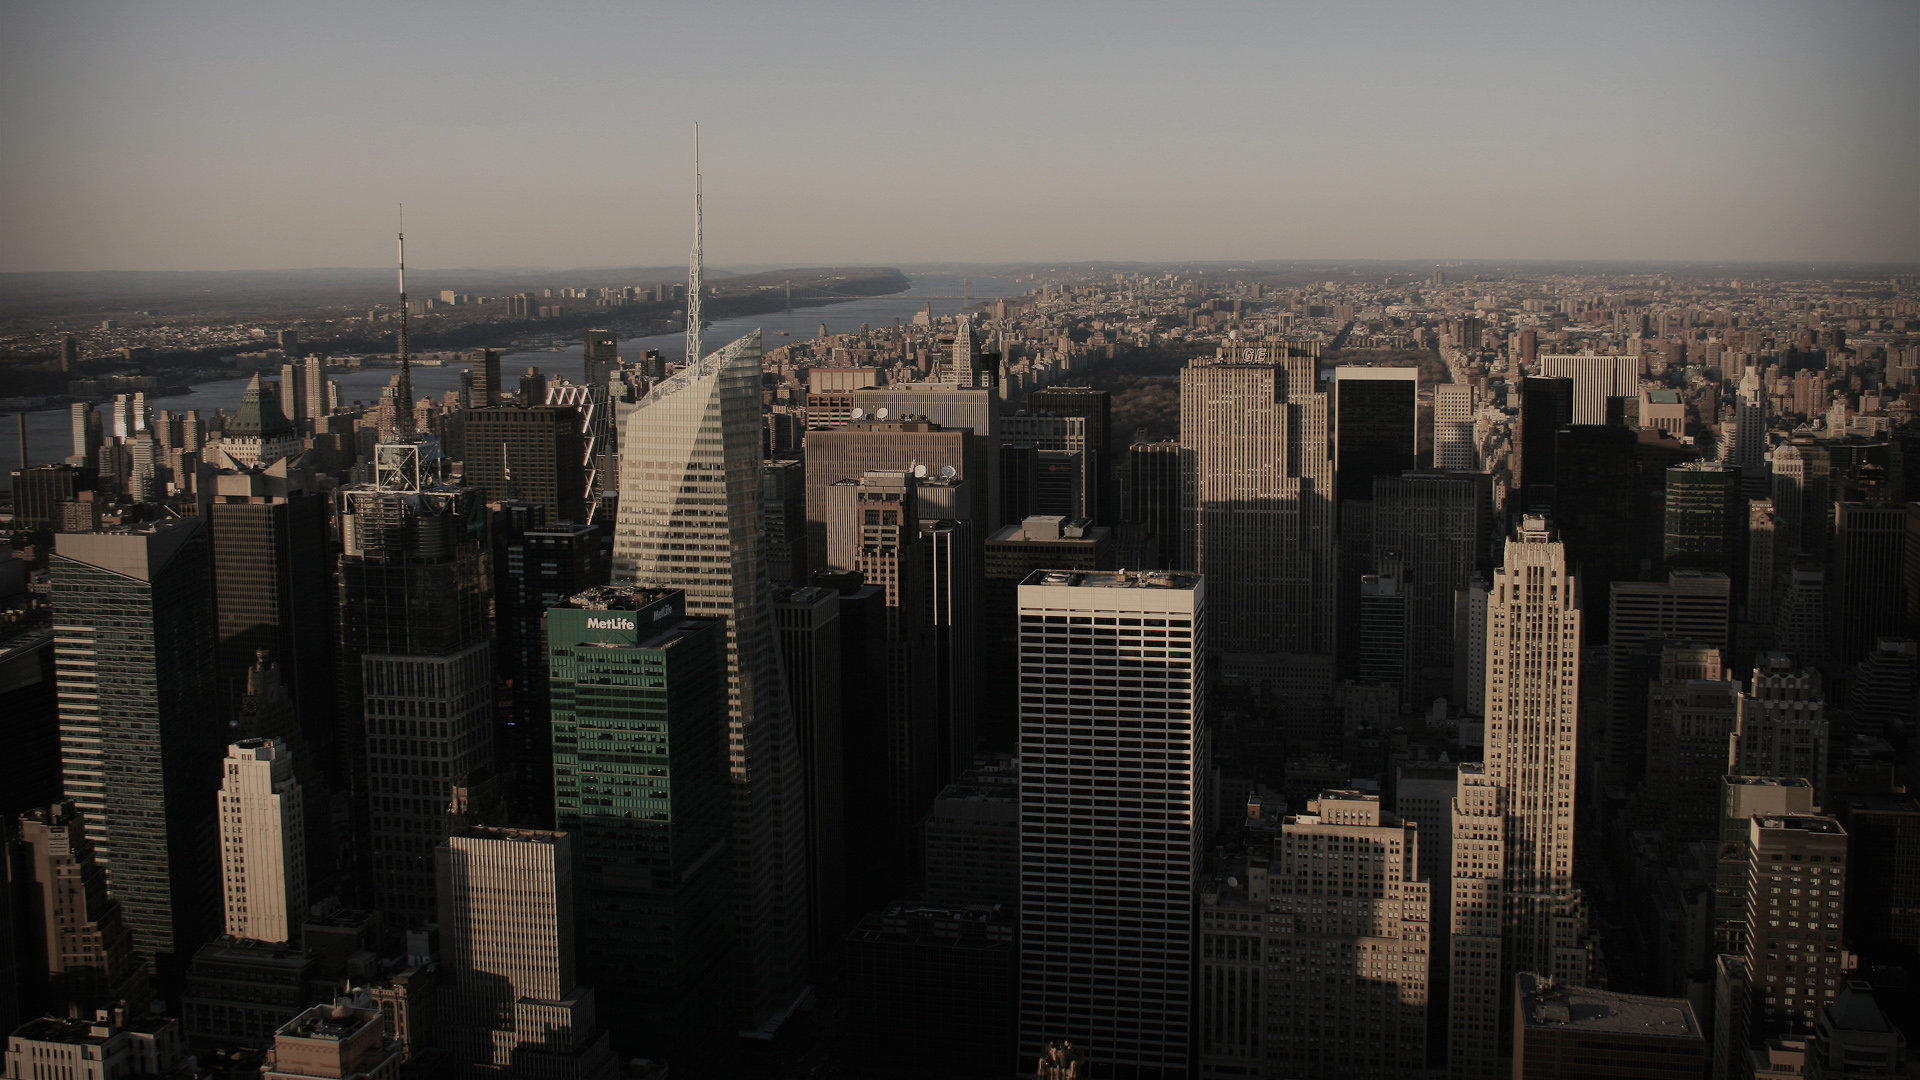 Free Download New York Wallpaper Id 486192 Hd 1920x1080 For Computer